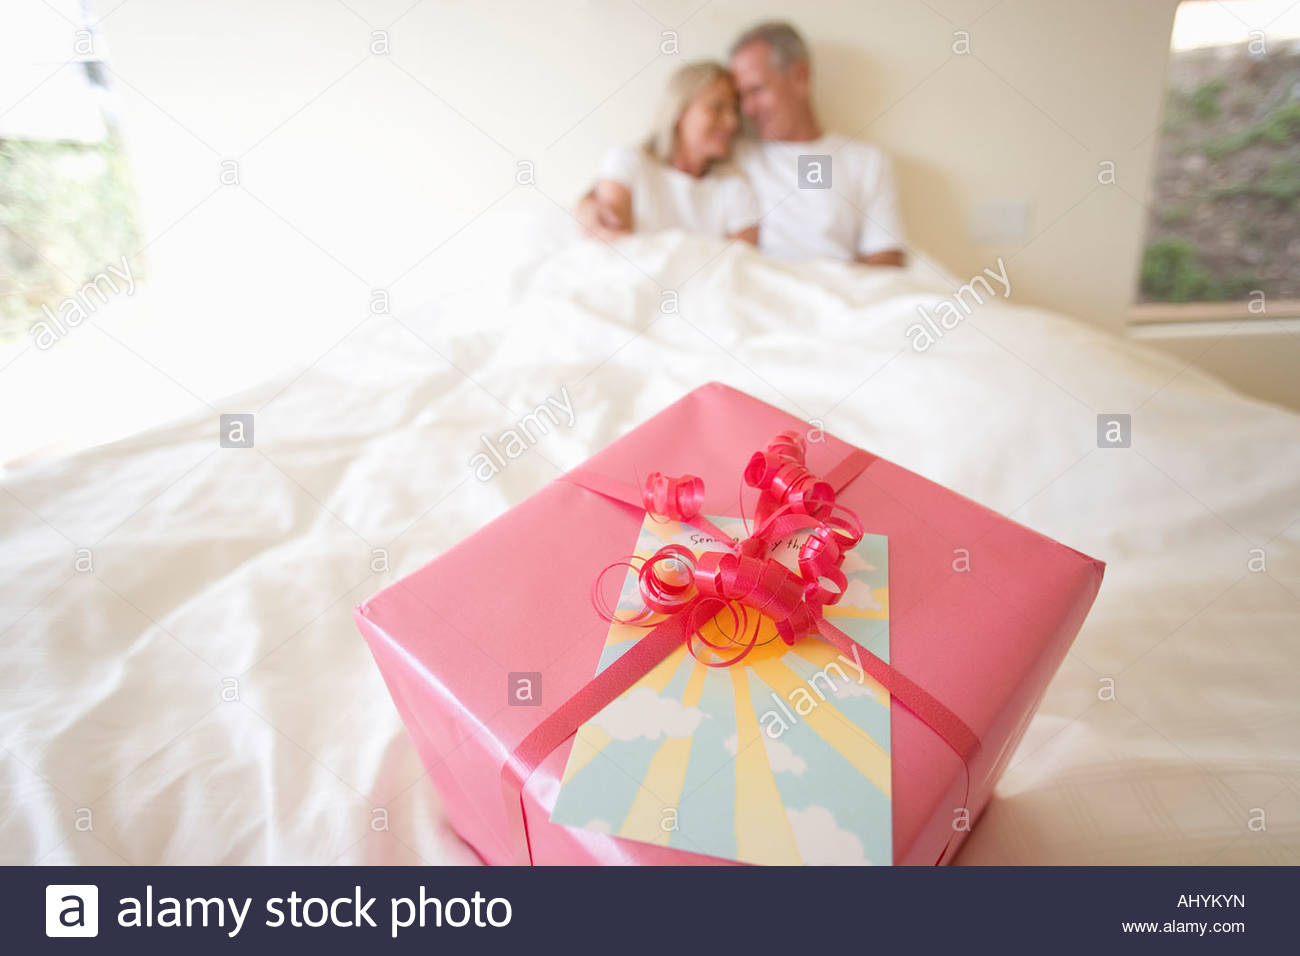 Mature Couple Sitting Upright In Bed Focus On Birthday Gift Wrapped Pink Wrapping Paper And Red Ribbon Foreground